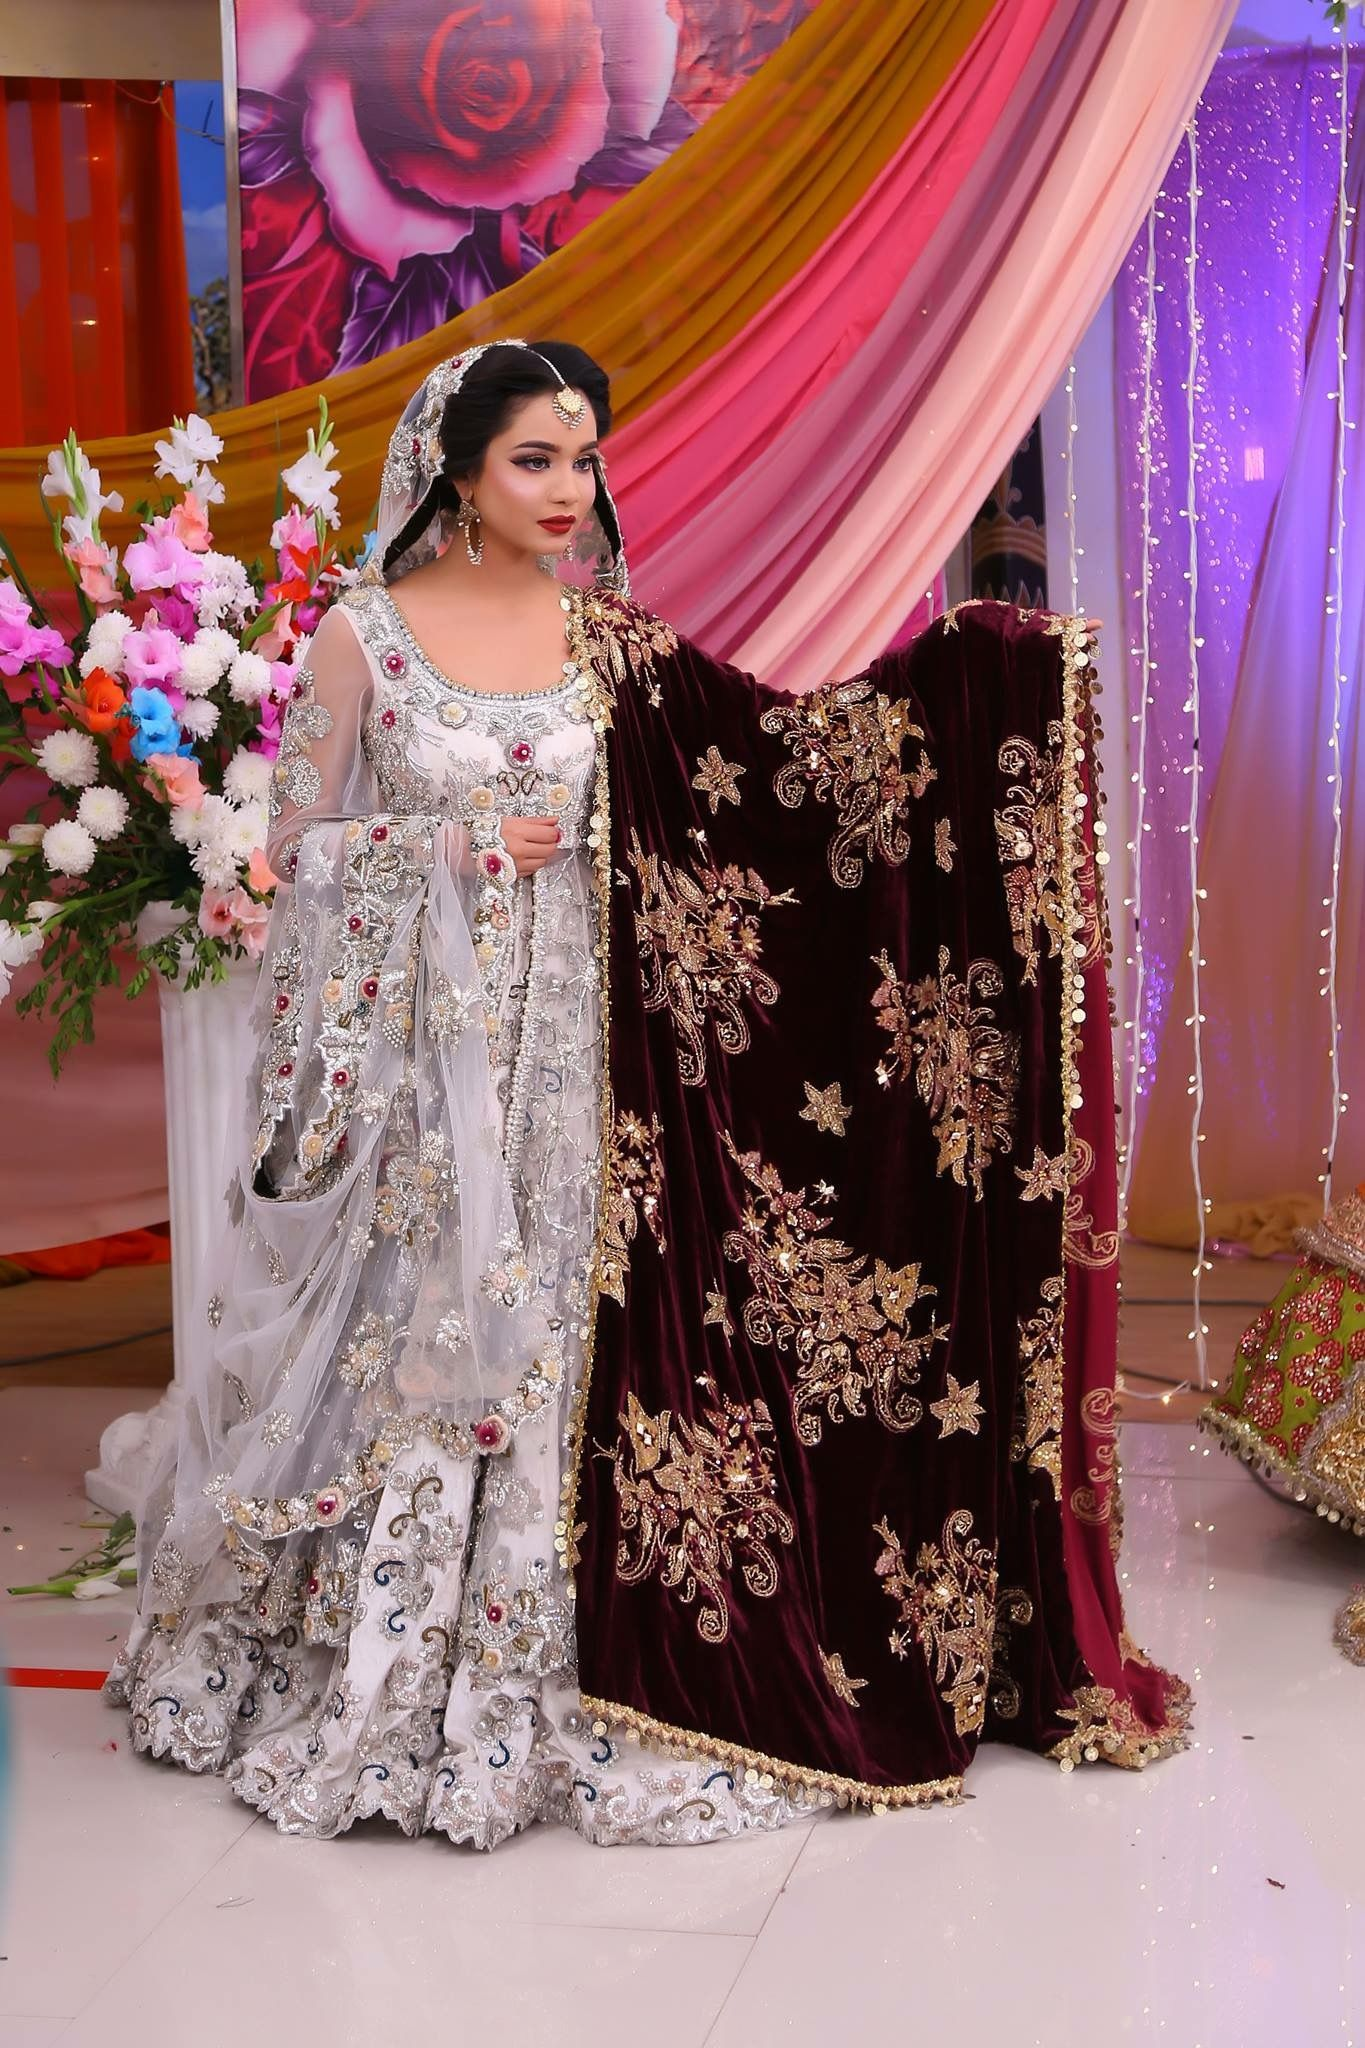 dress - Dresses walima trends collection 3025 video